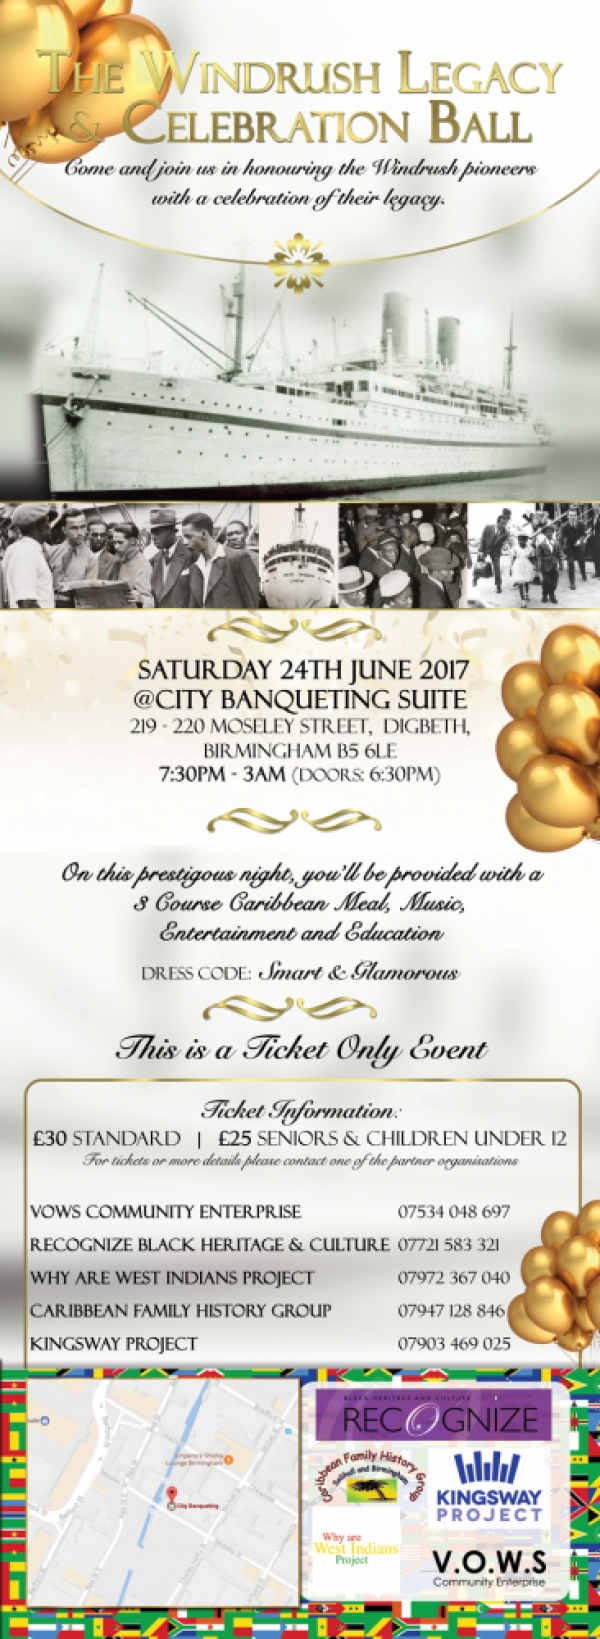 The Windrush Legacy & Celebration Ball